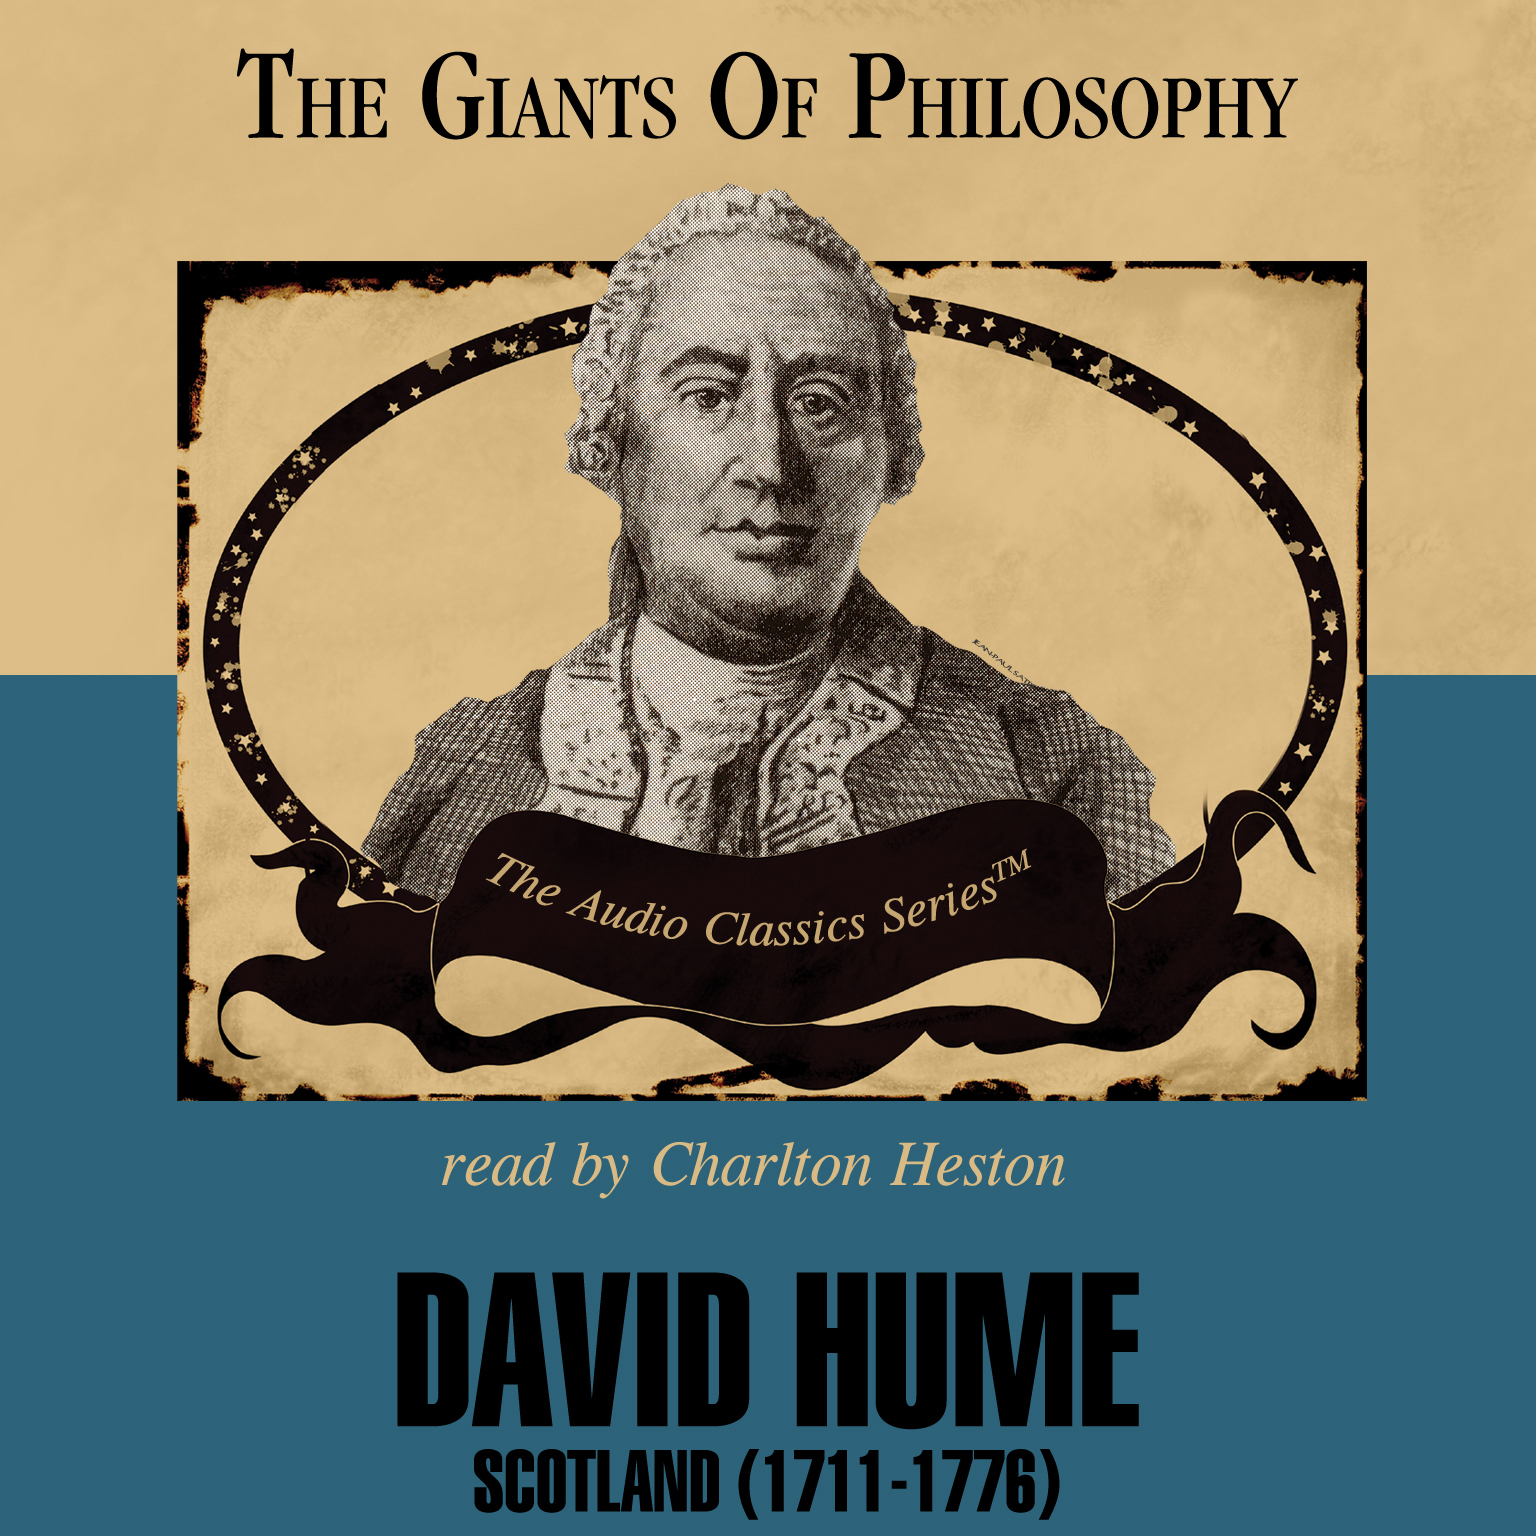 Printable David Hume: Scotland (1711-1776) Audiobook Cover Art